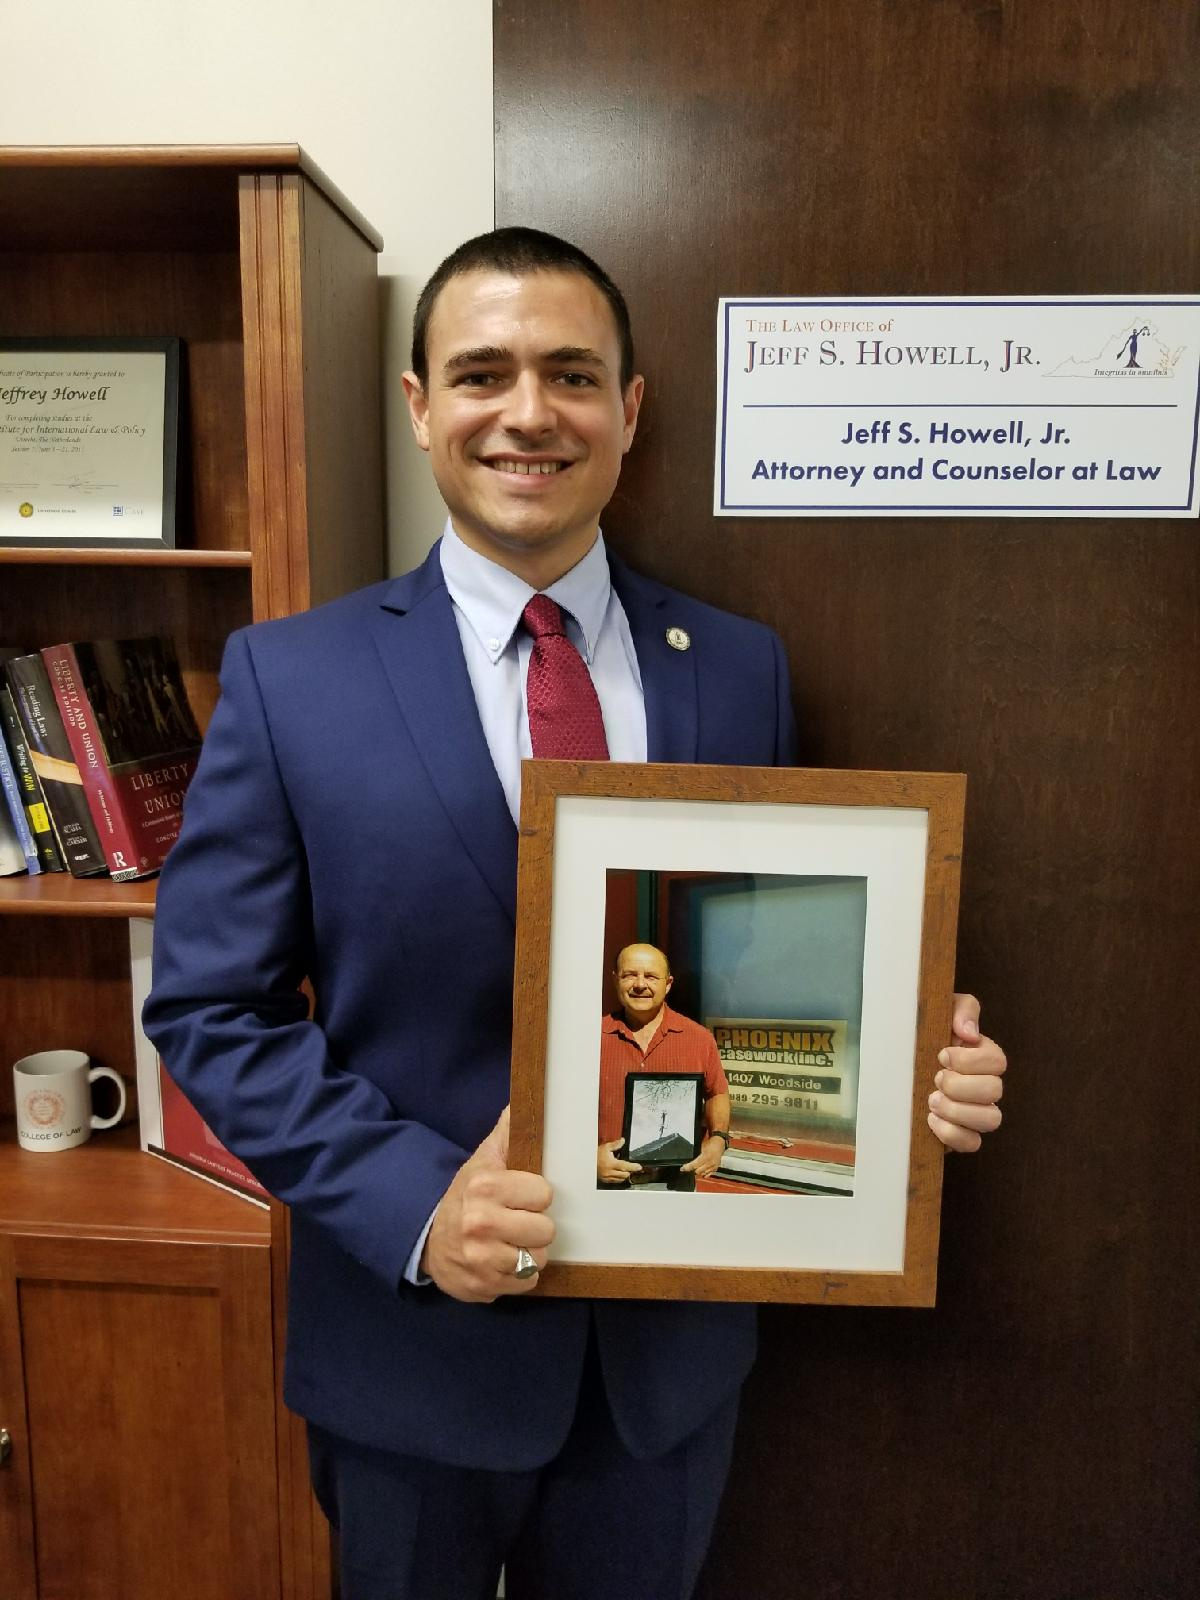 Three generations in one photograph. . .   Jeff S. Howell, Jr., Esq. holding a picture of his Father, Jeff S. Howell, Sr., President and Founder of Phoenix Casework, Inc., who is holding a picture of his father, Eugene Howell standing on the shoulders of his brother, Phillip Howell, as they installed a television Antennae through their company, Howell's Antennae Service (circa 1954).